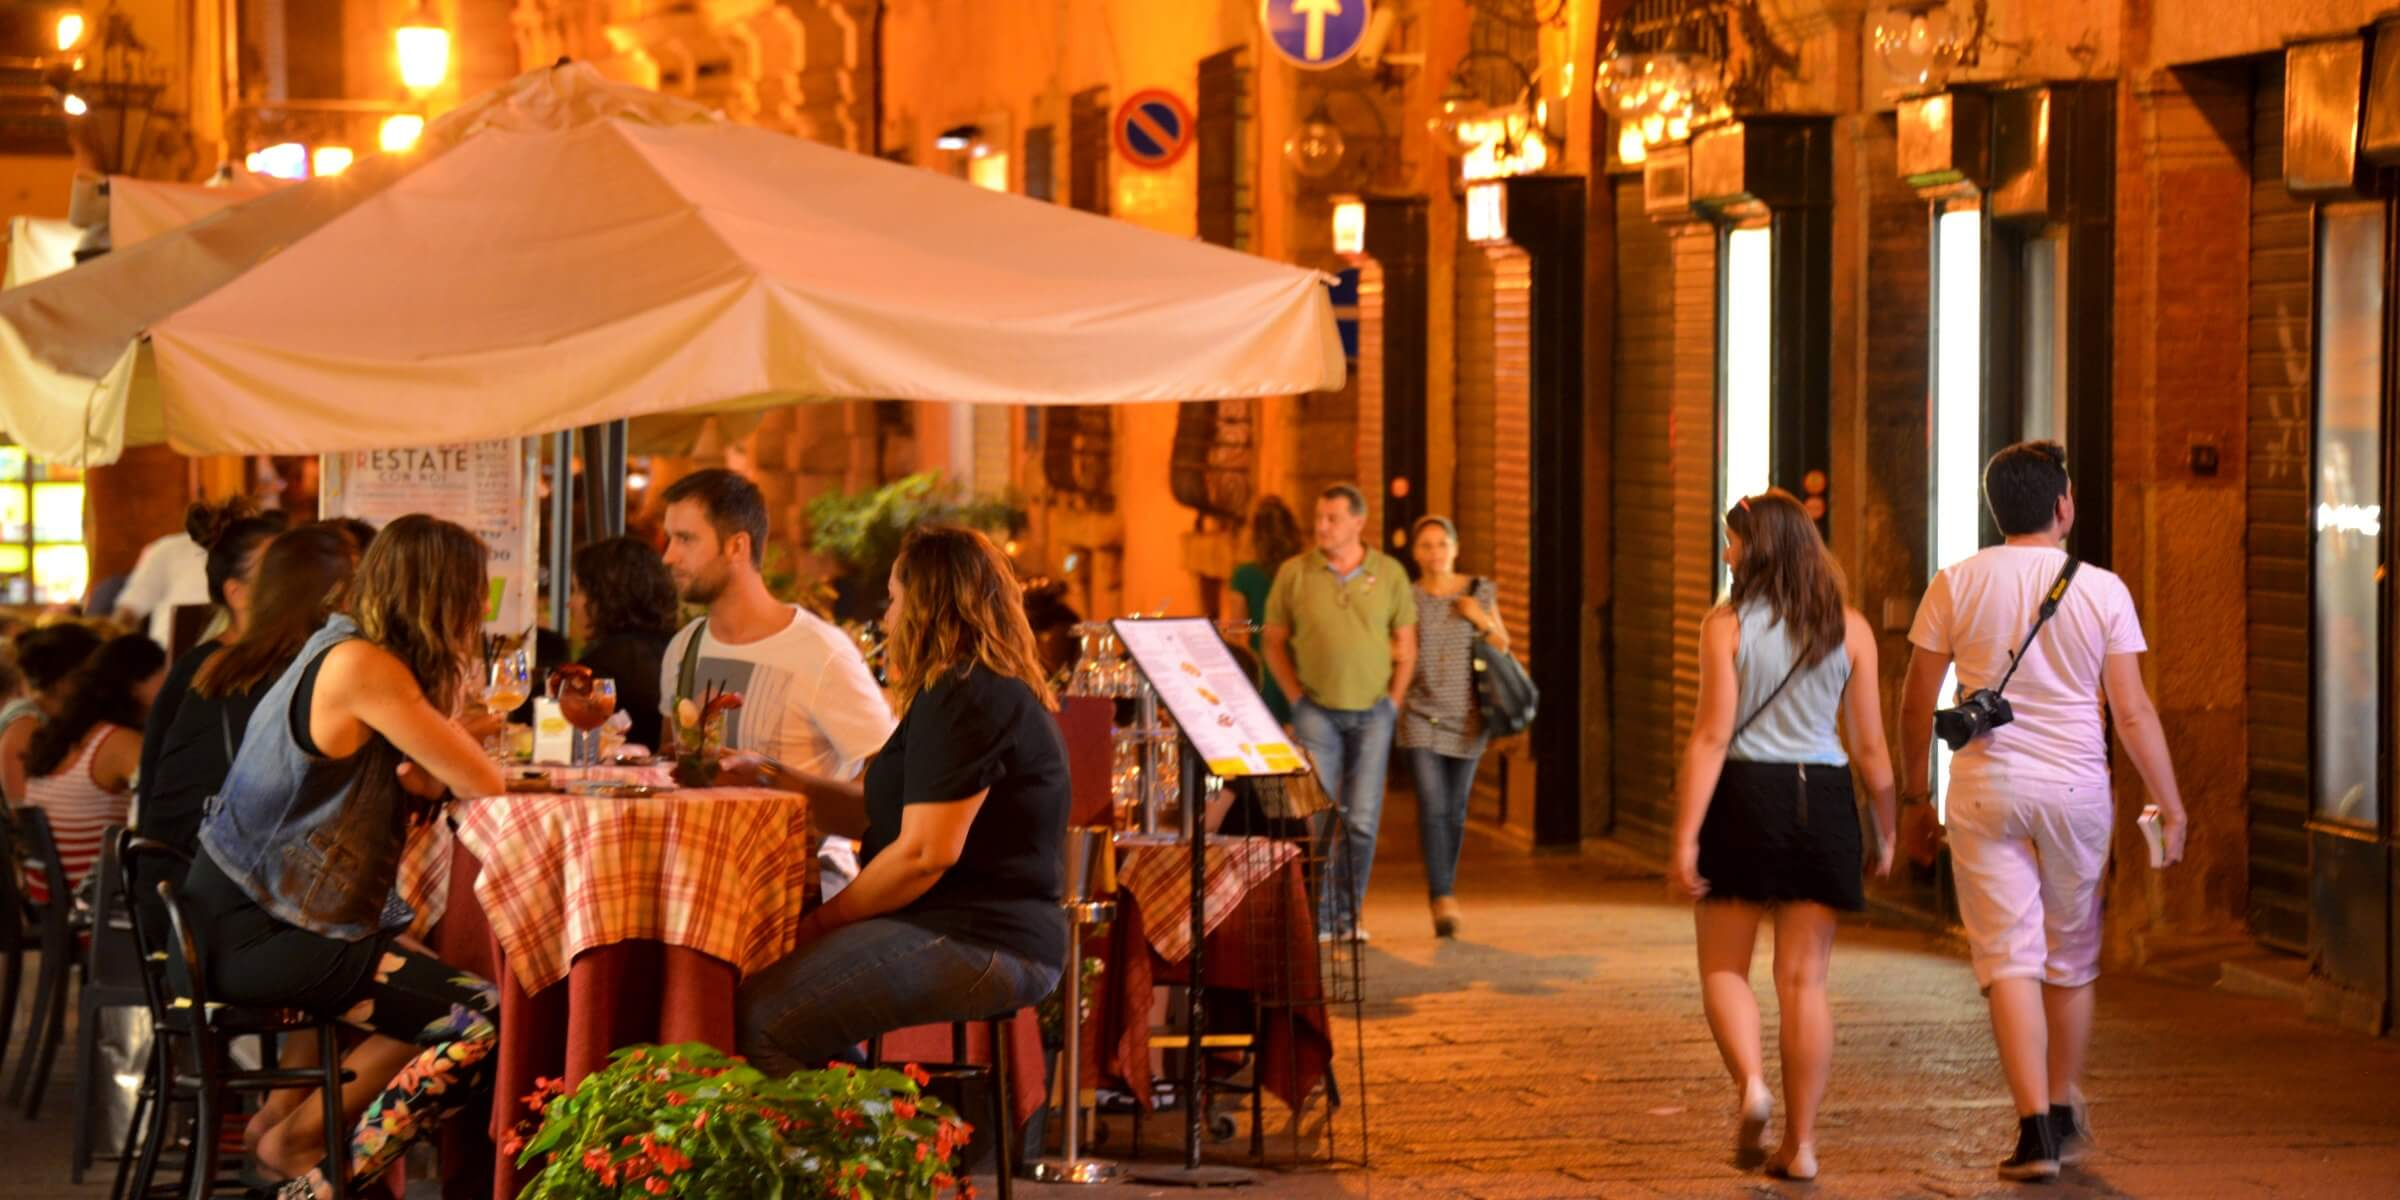 Bologna it is a vibrant university city, full of bars and cafes. At night it is always full of people and events